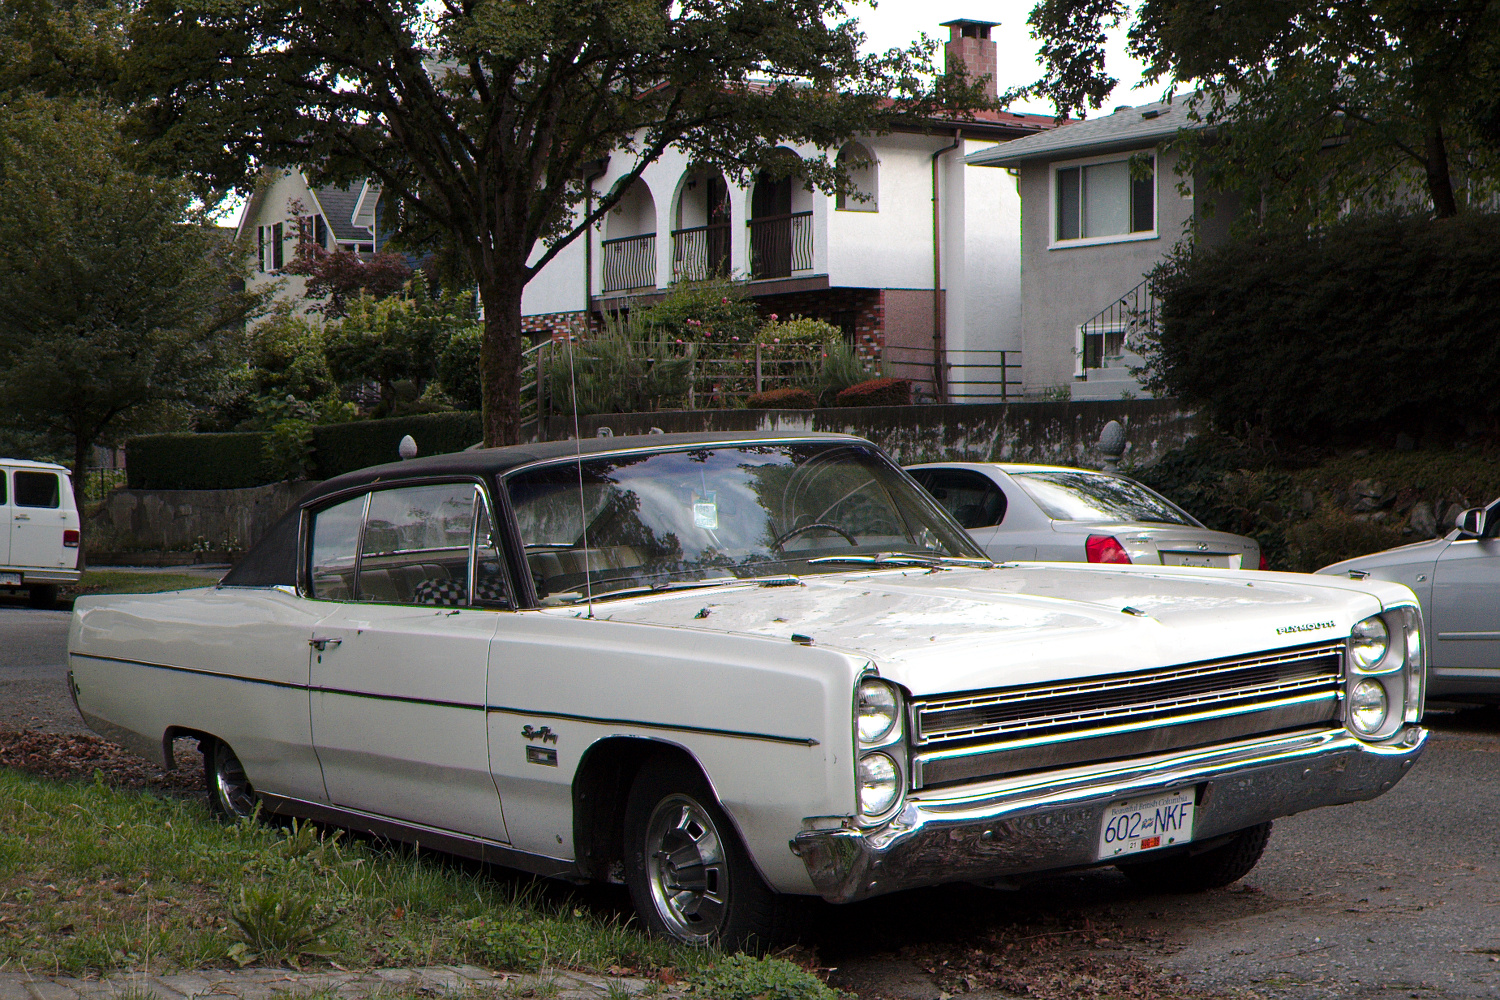 Old Parked Cars Vancouver: 1968 Plymouth Sport Fury